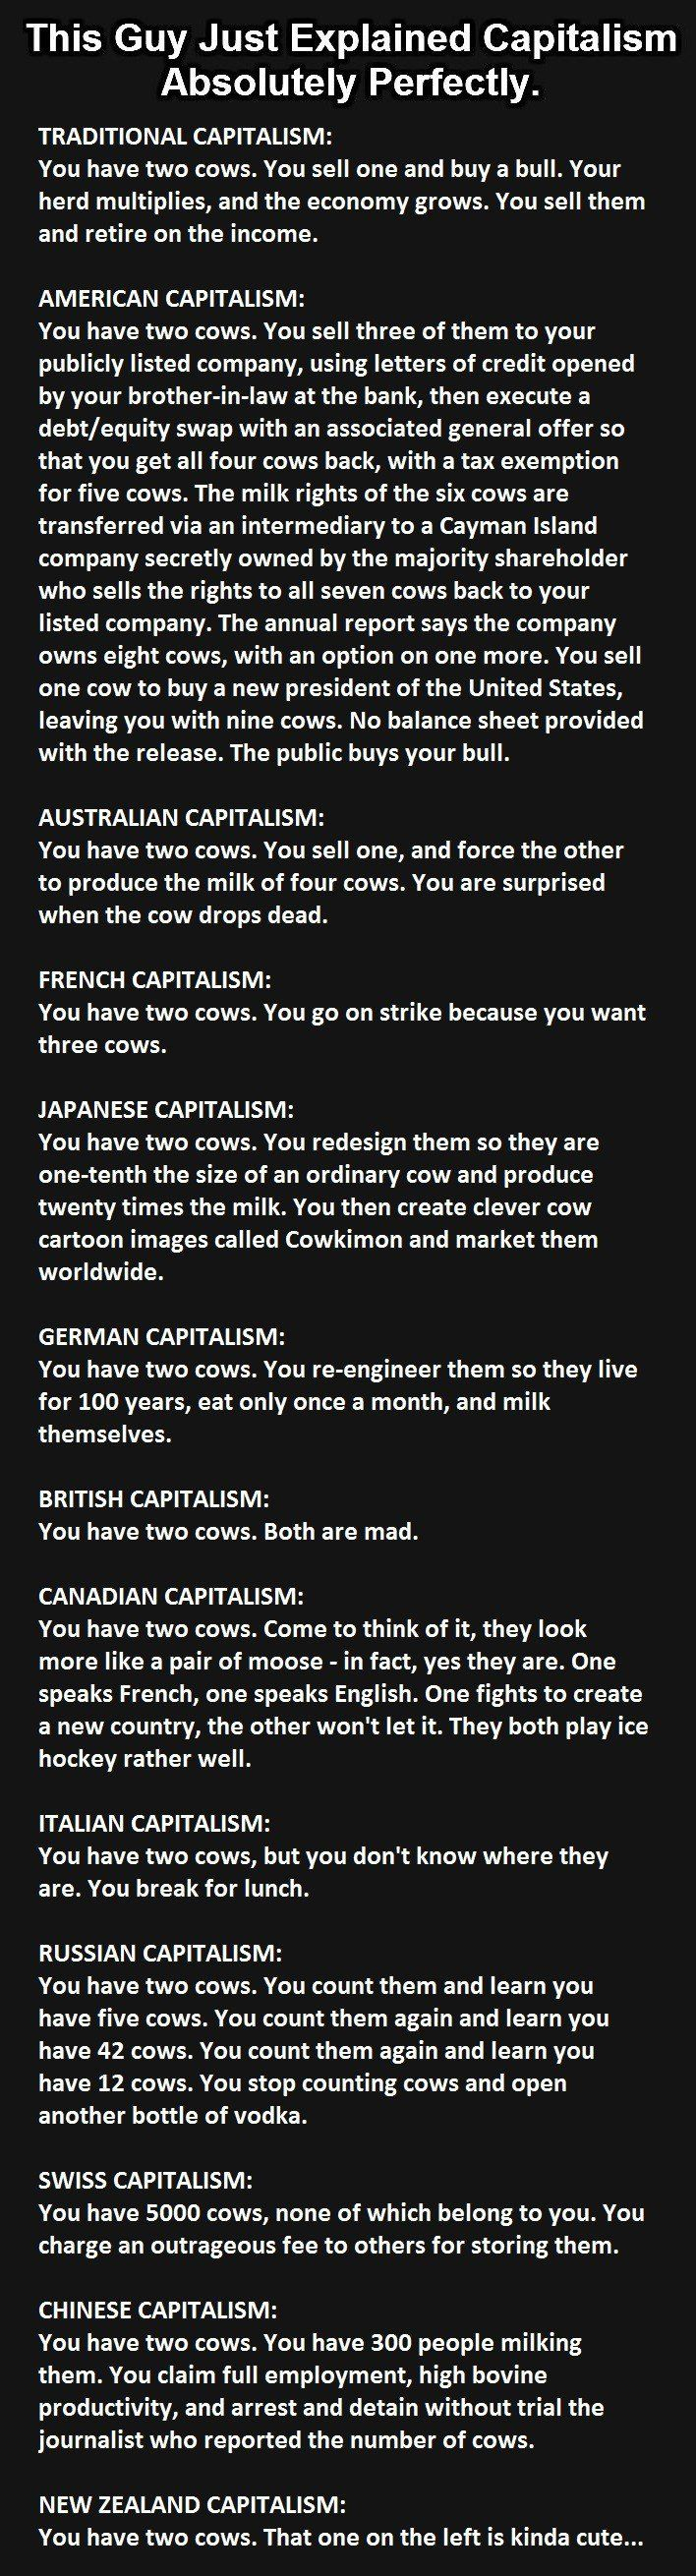 If it's good enough for John Cleese, it's good enough for me. . . *|* This Guy Just Explained Capitalism Absolutely Perfectly